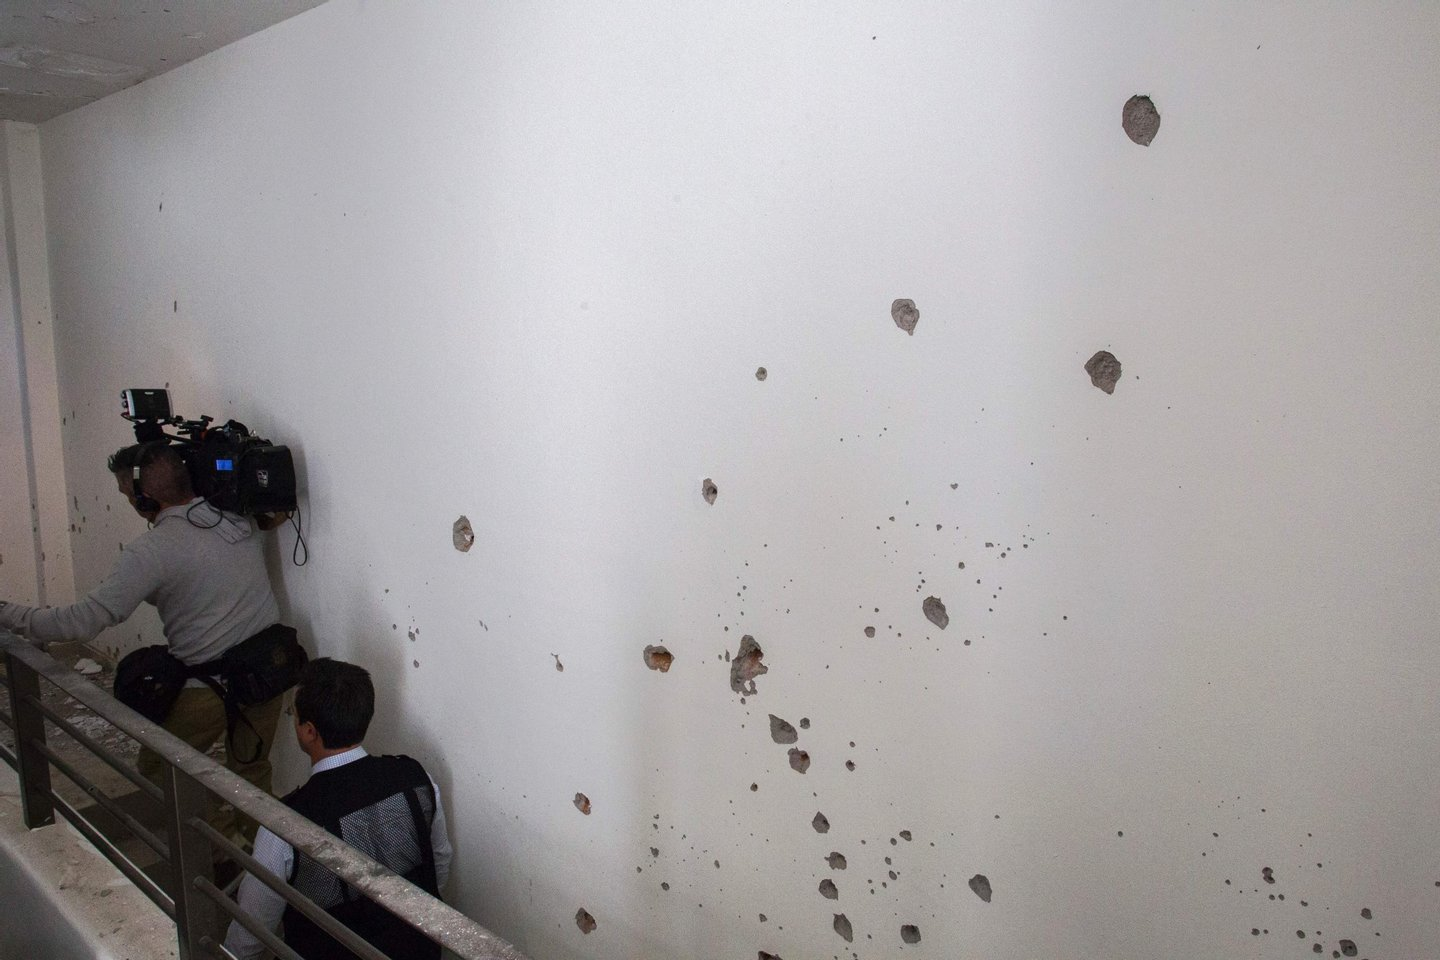 """Bullet holes on a wall in the house where five alleged gang members were killed in the military operation which resulted in the recapture of Joaquin """"El Chapo"""" Guzman, in Los Mochis city, Sinaloa State, Mexico on January 11, 2016. Mexican marines recaptured fugitive drug kingpin Joaquin """"El Chapo"""" Guzman on January 8 in the northwest of the country, six months after his spectacular prison break embarrassed authorities. AFP PHOTO/HECTOR GUERRERO / AFP / HECTOR GUERRERO (Photo credit should read HECTOR GUERRERO/AFP/Getty Images)"""